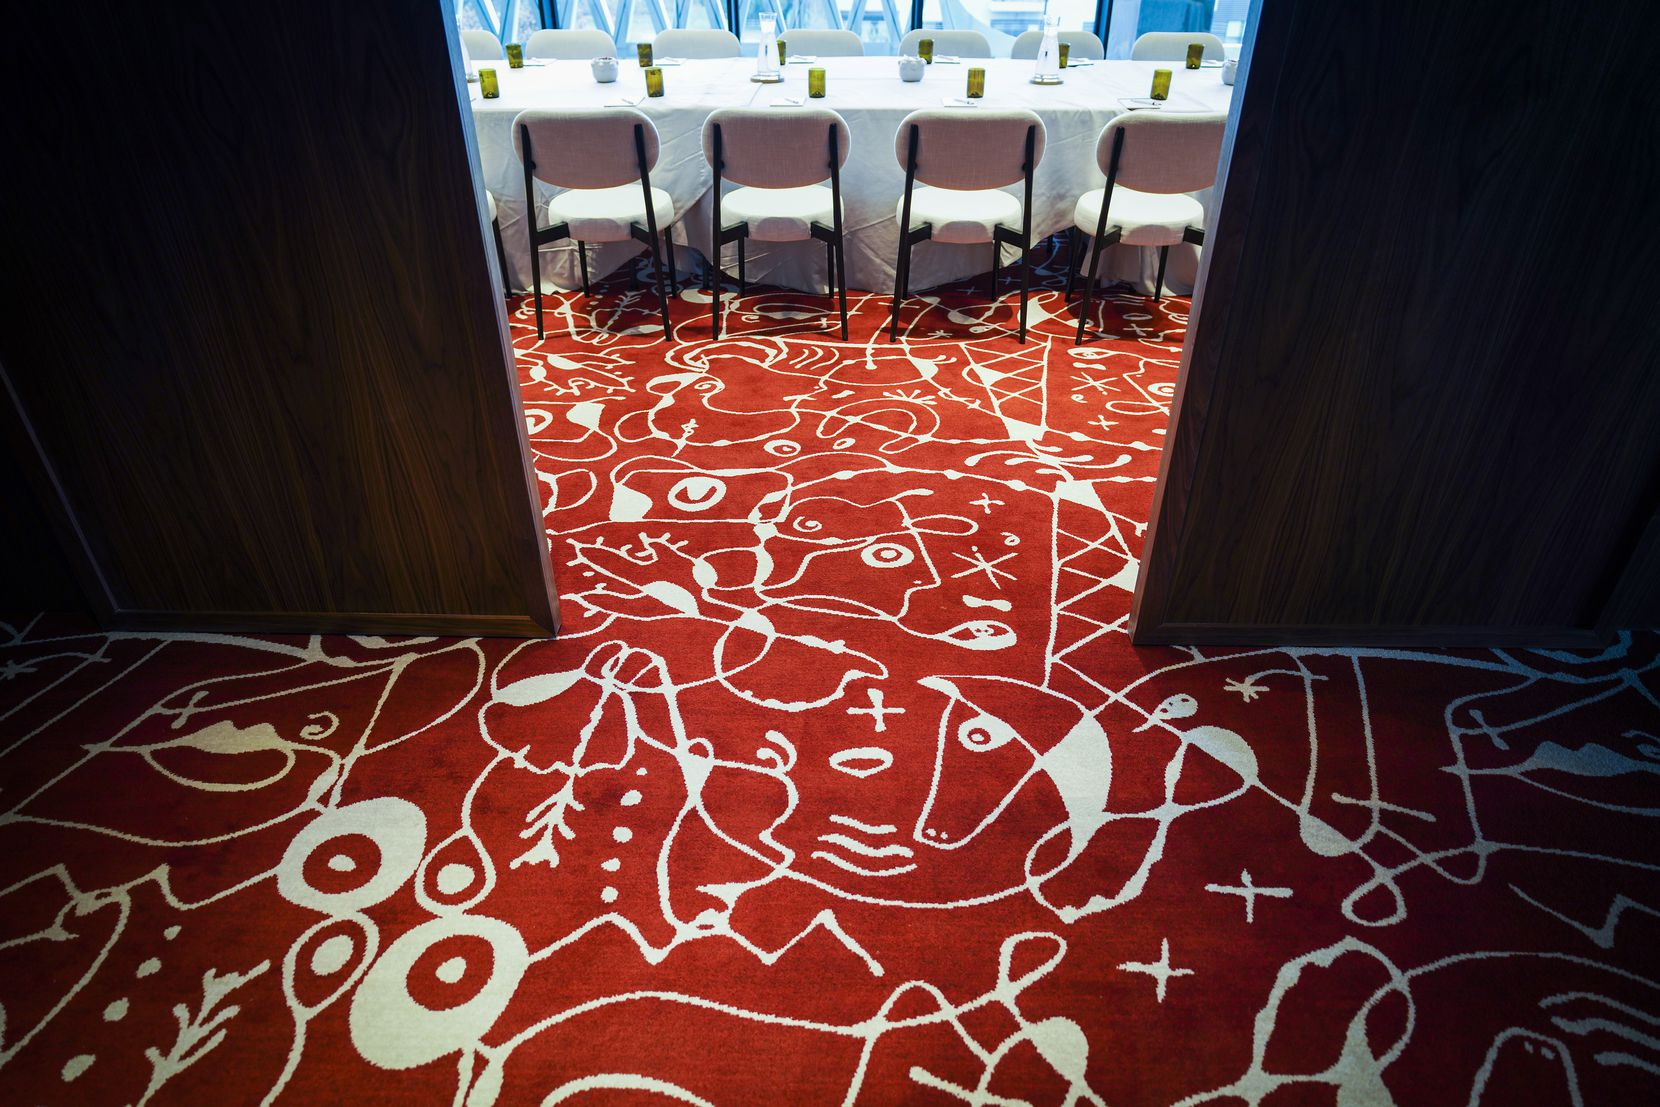 Texas themed carpet runs into a meeting room at the new Virgin Hotels Dallas.